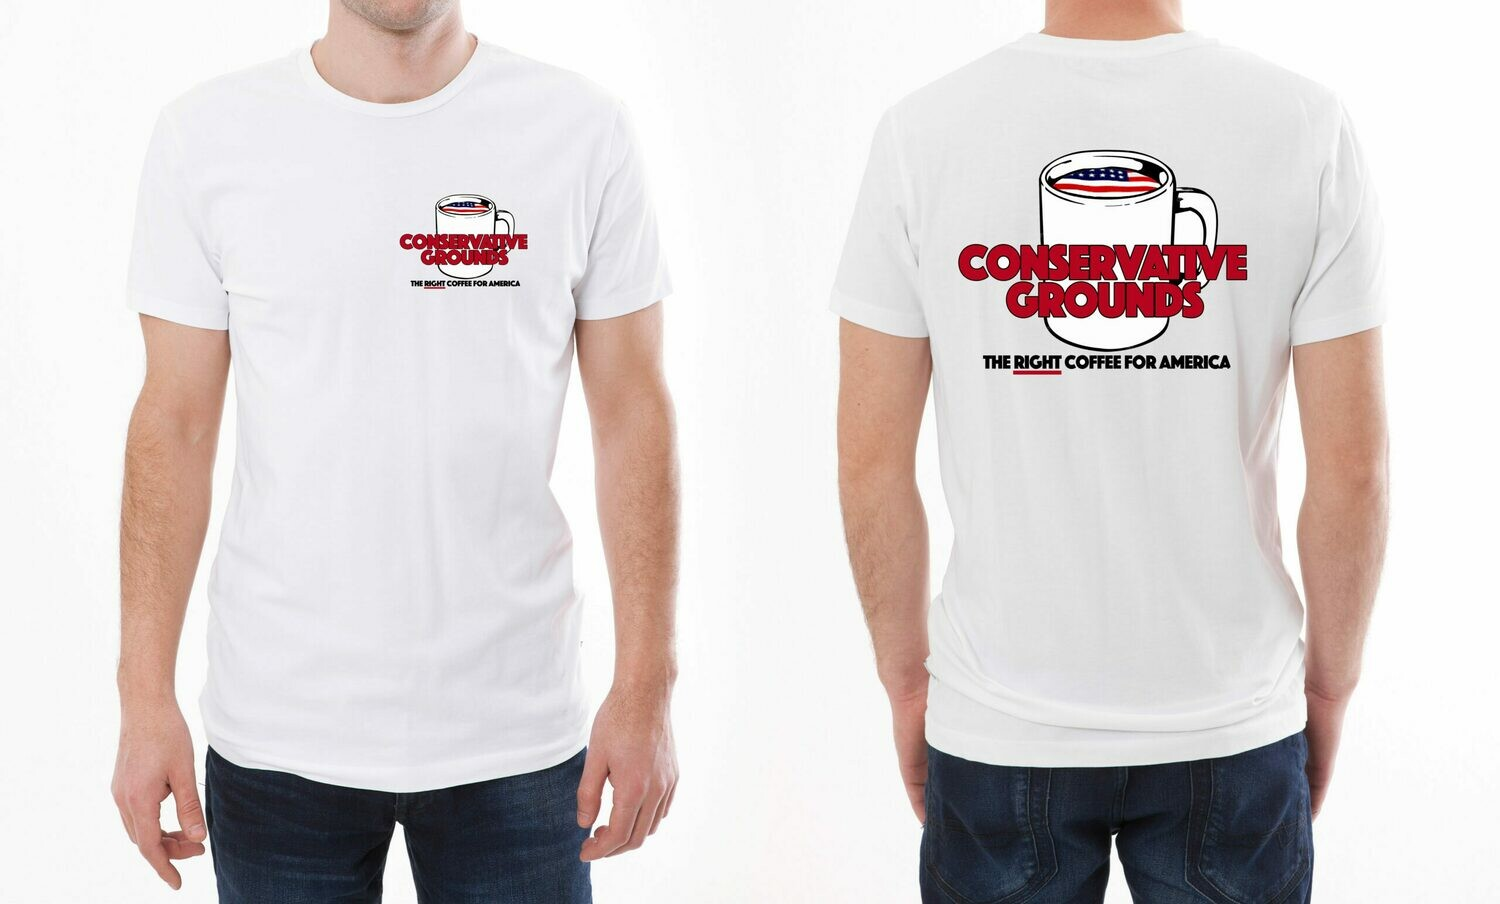 Grounds T-Shirt